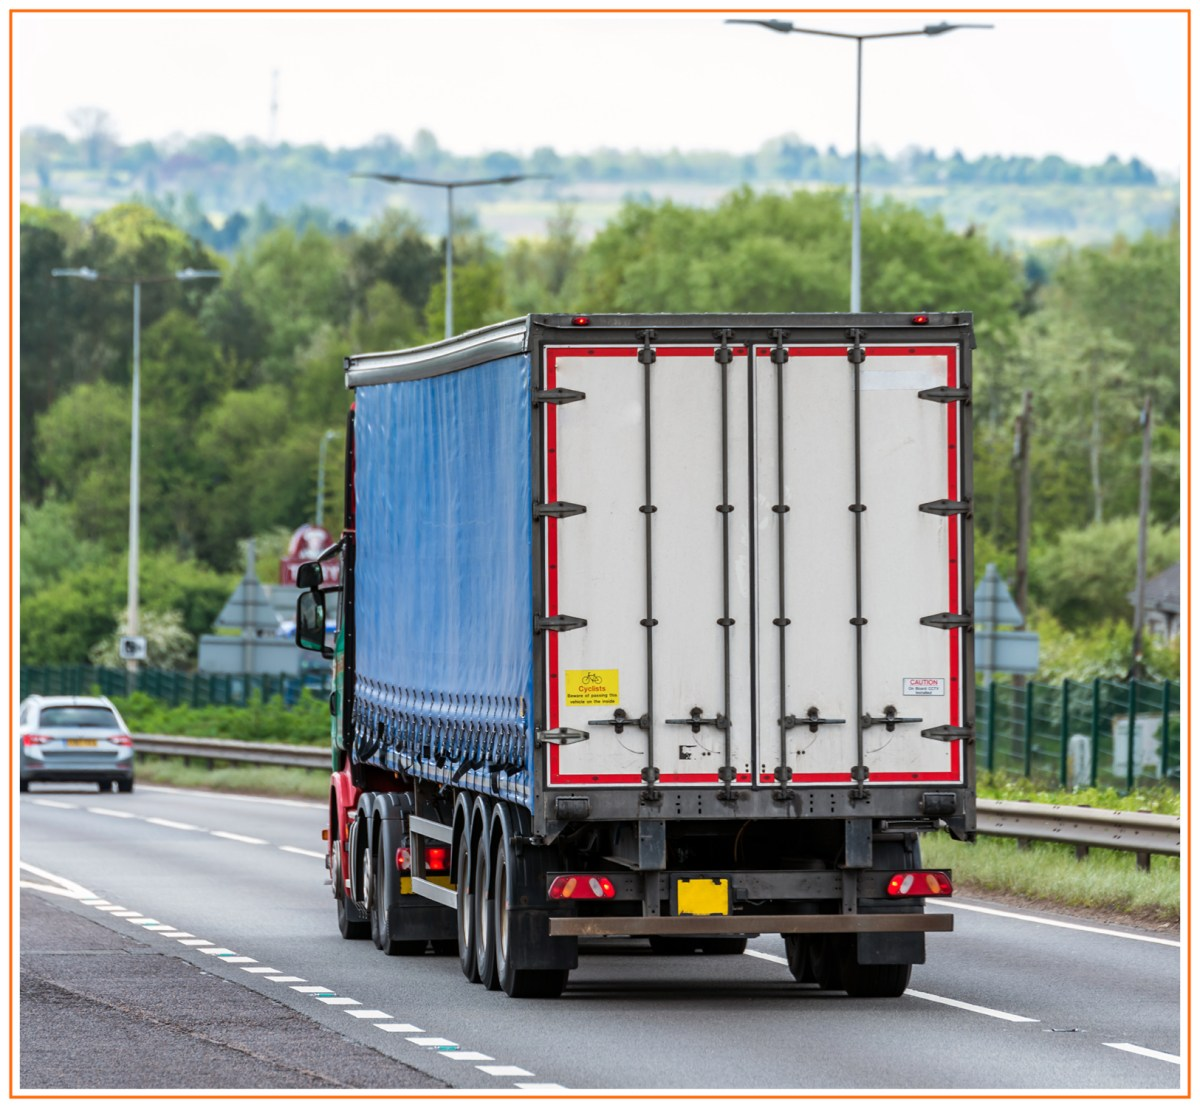 https://i0.wp.com/haultech.co.uk/wp-content/uploads/2021/05/Handling-the-Rising-Costs-of-Haulage-Operations-with-HaulTech.jpg?fit=1200%2C1108&ssl=1